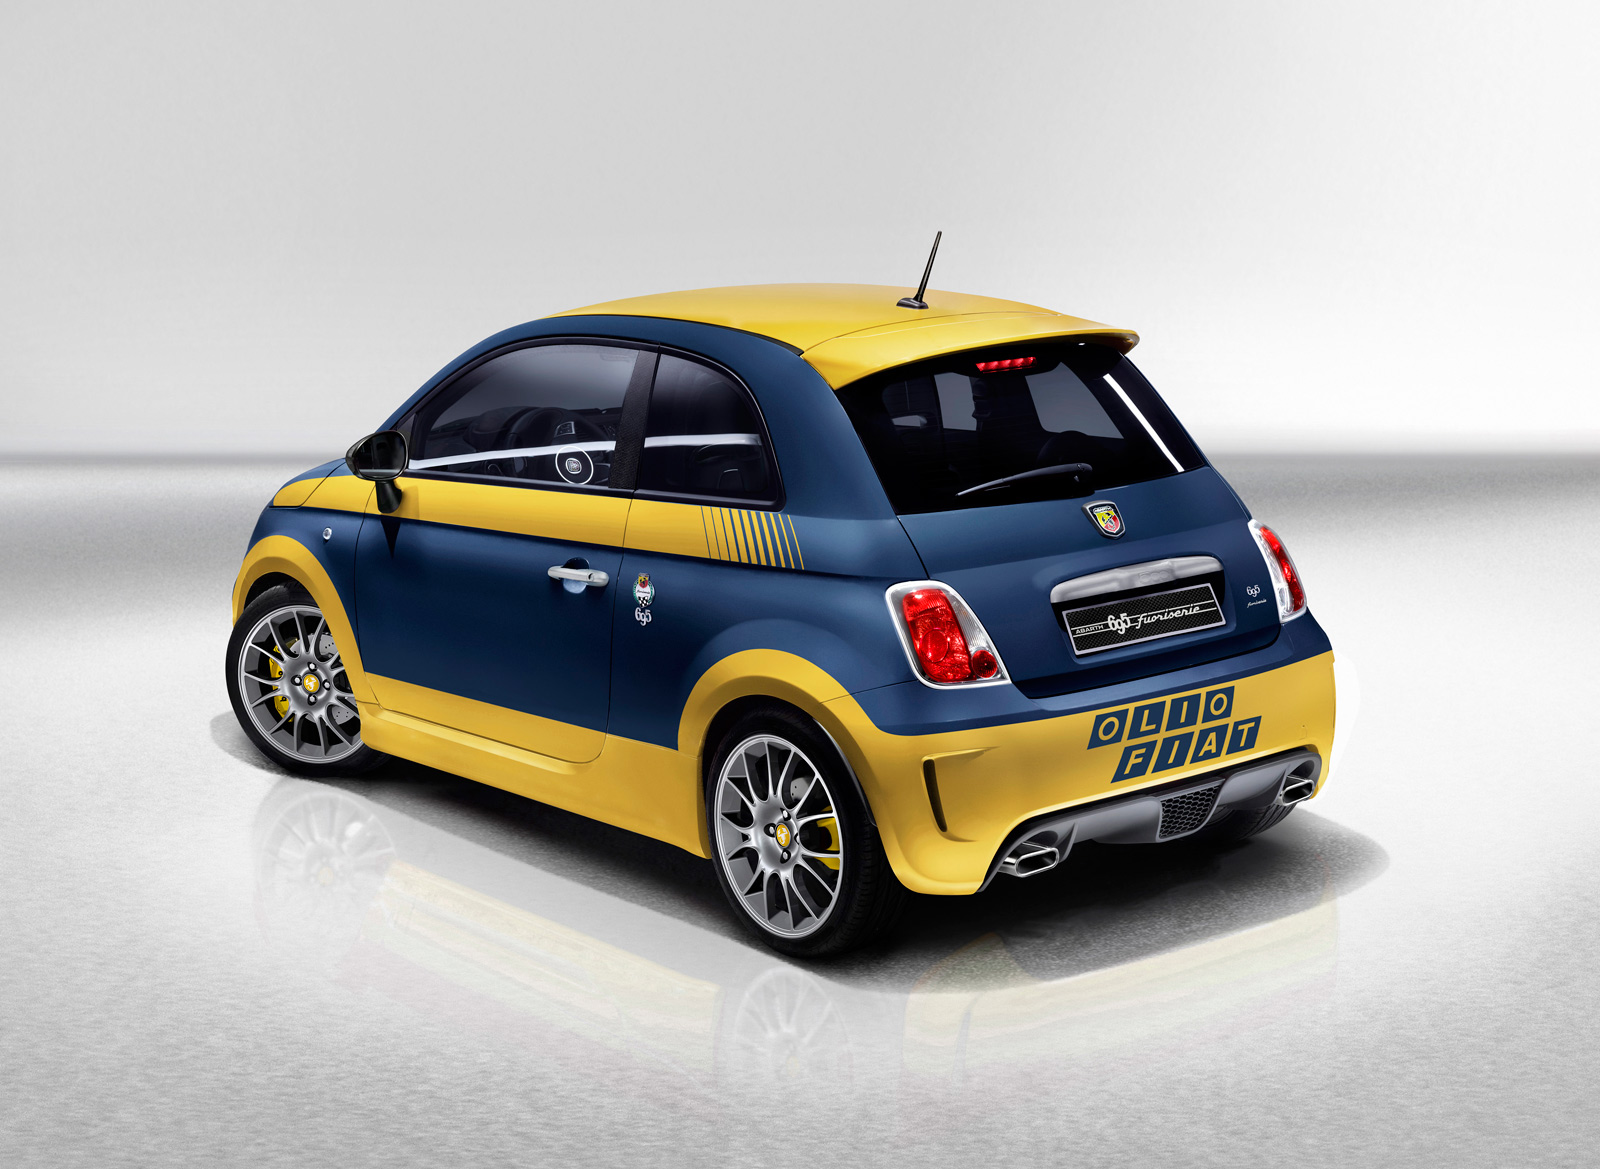 Fiat 500 Abarth Convertible used free download image